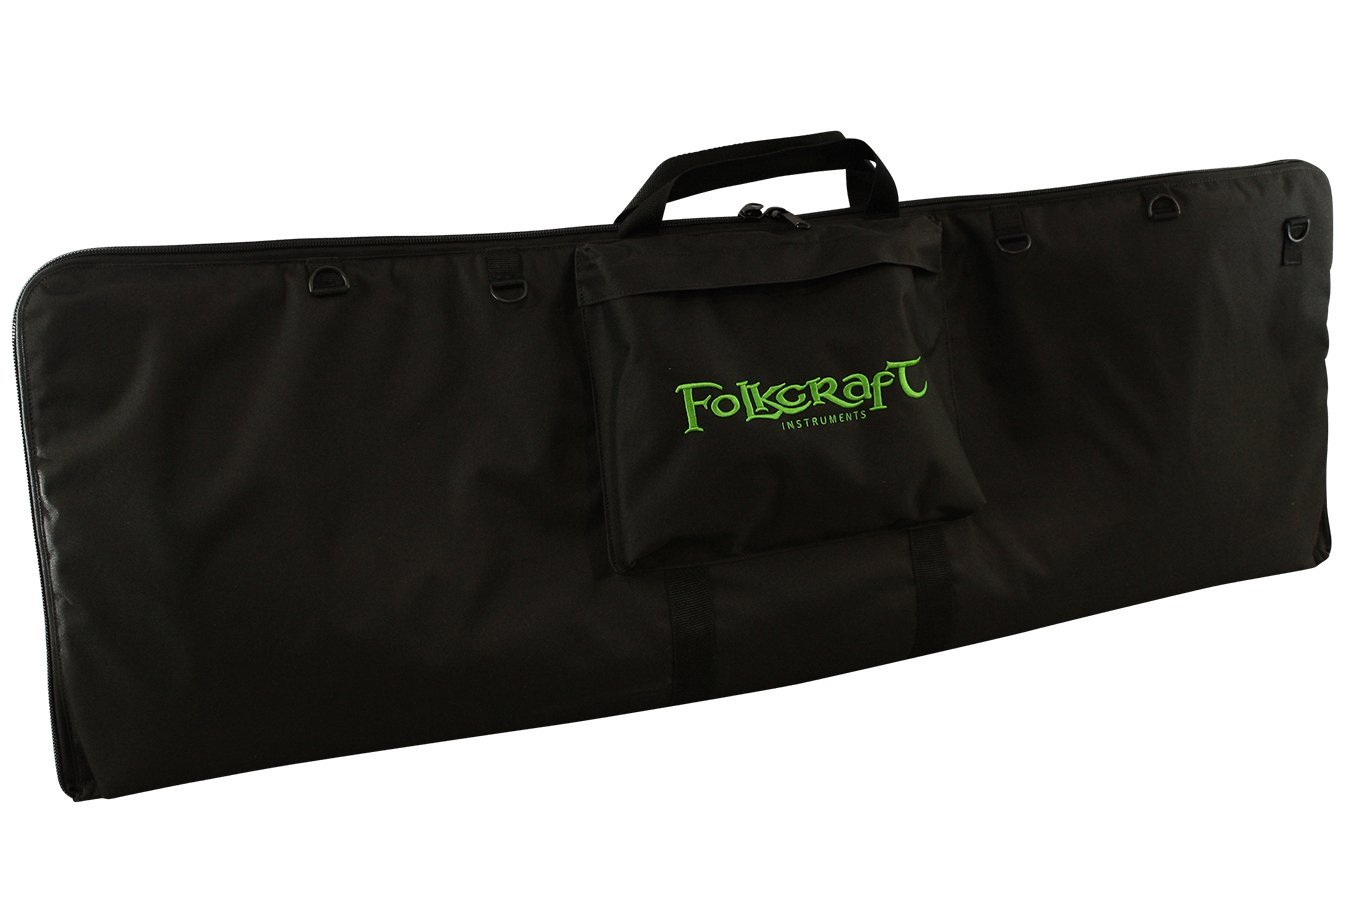 Dulcimer Carrying Bag, Extra Large Size For Courting Dulcimers